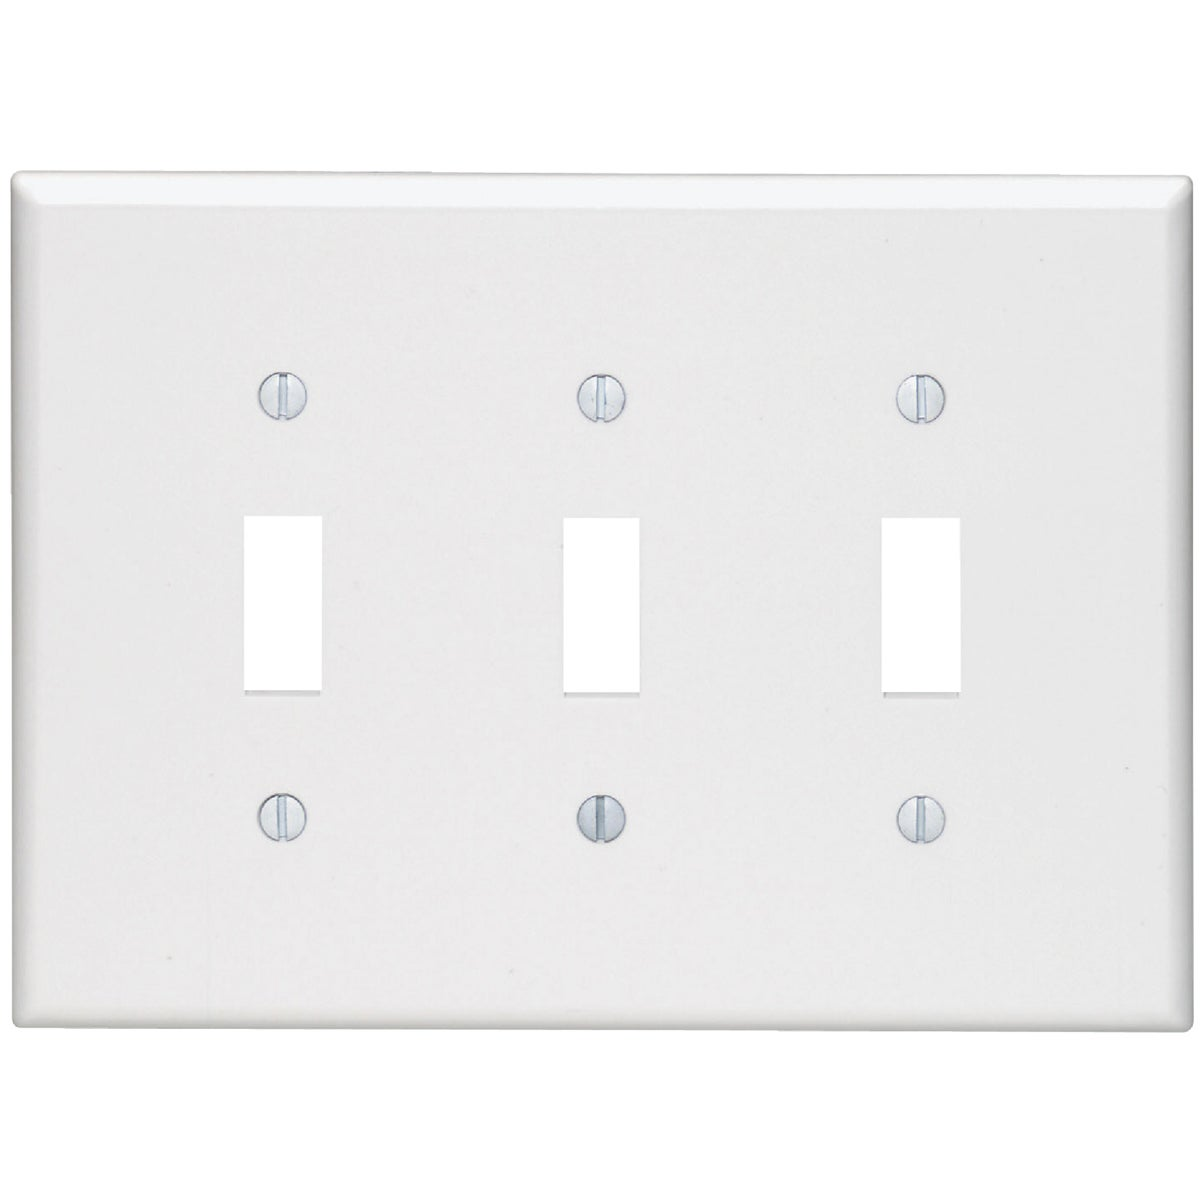 WHT 3-TOGGLE WALL PLATE - 80511W by Leviton Mfg Co